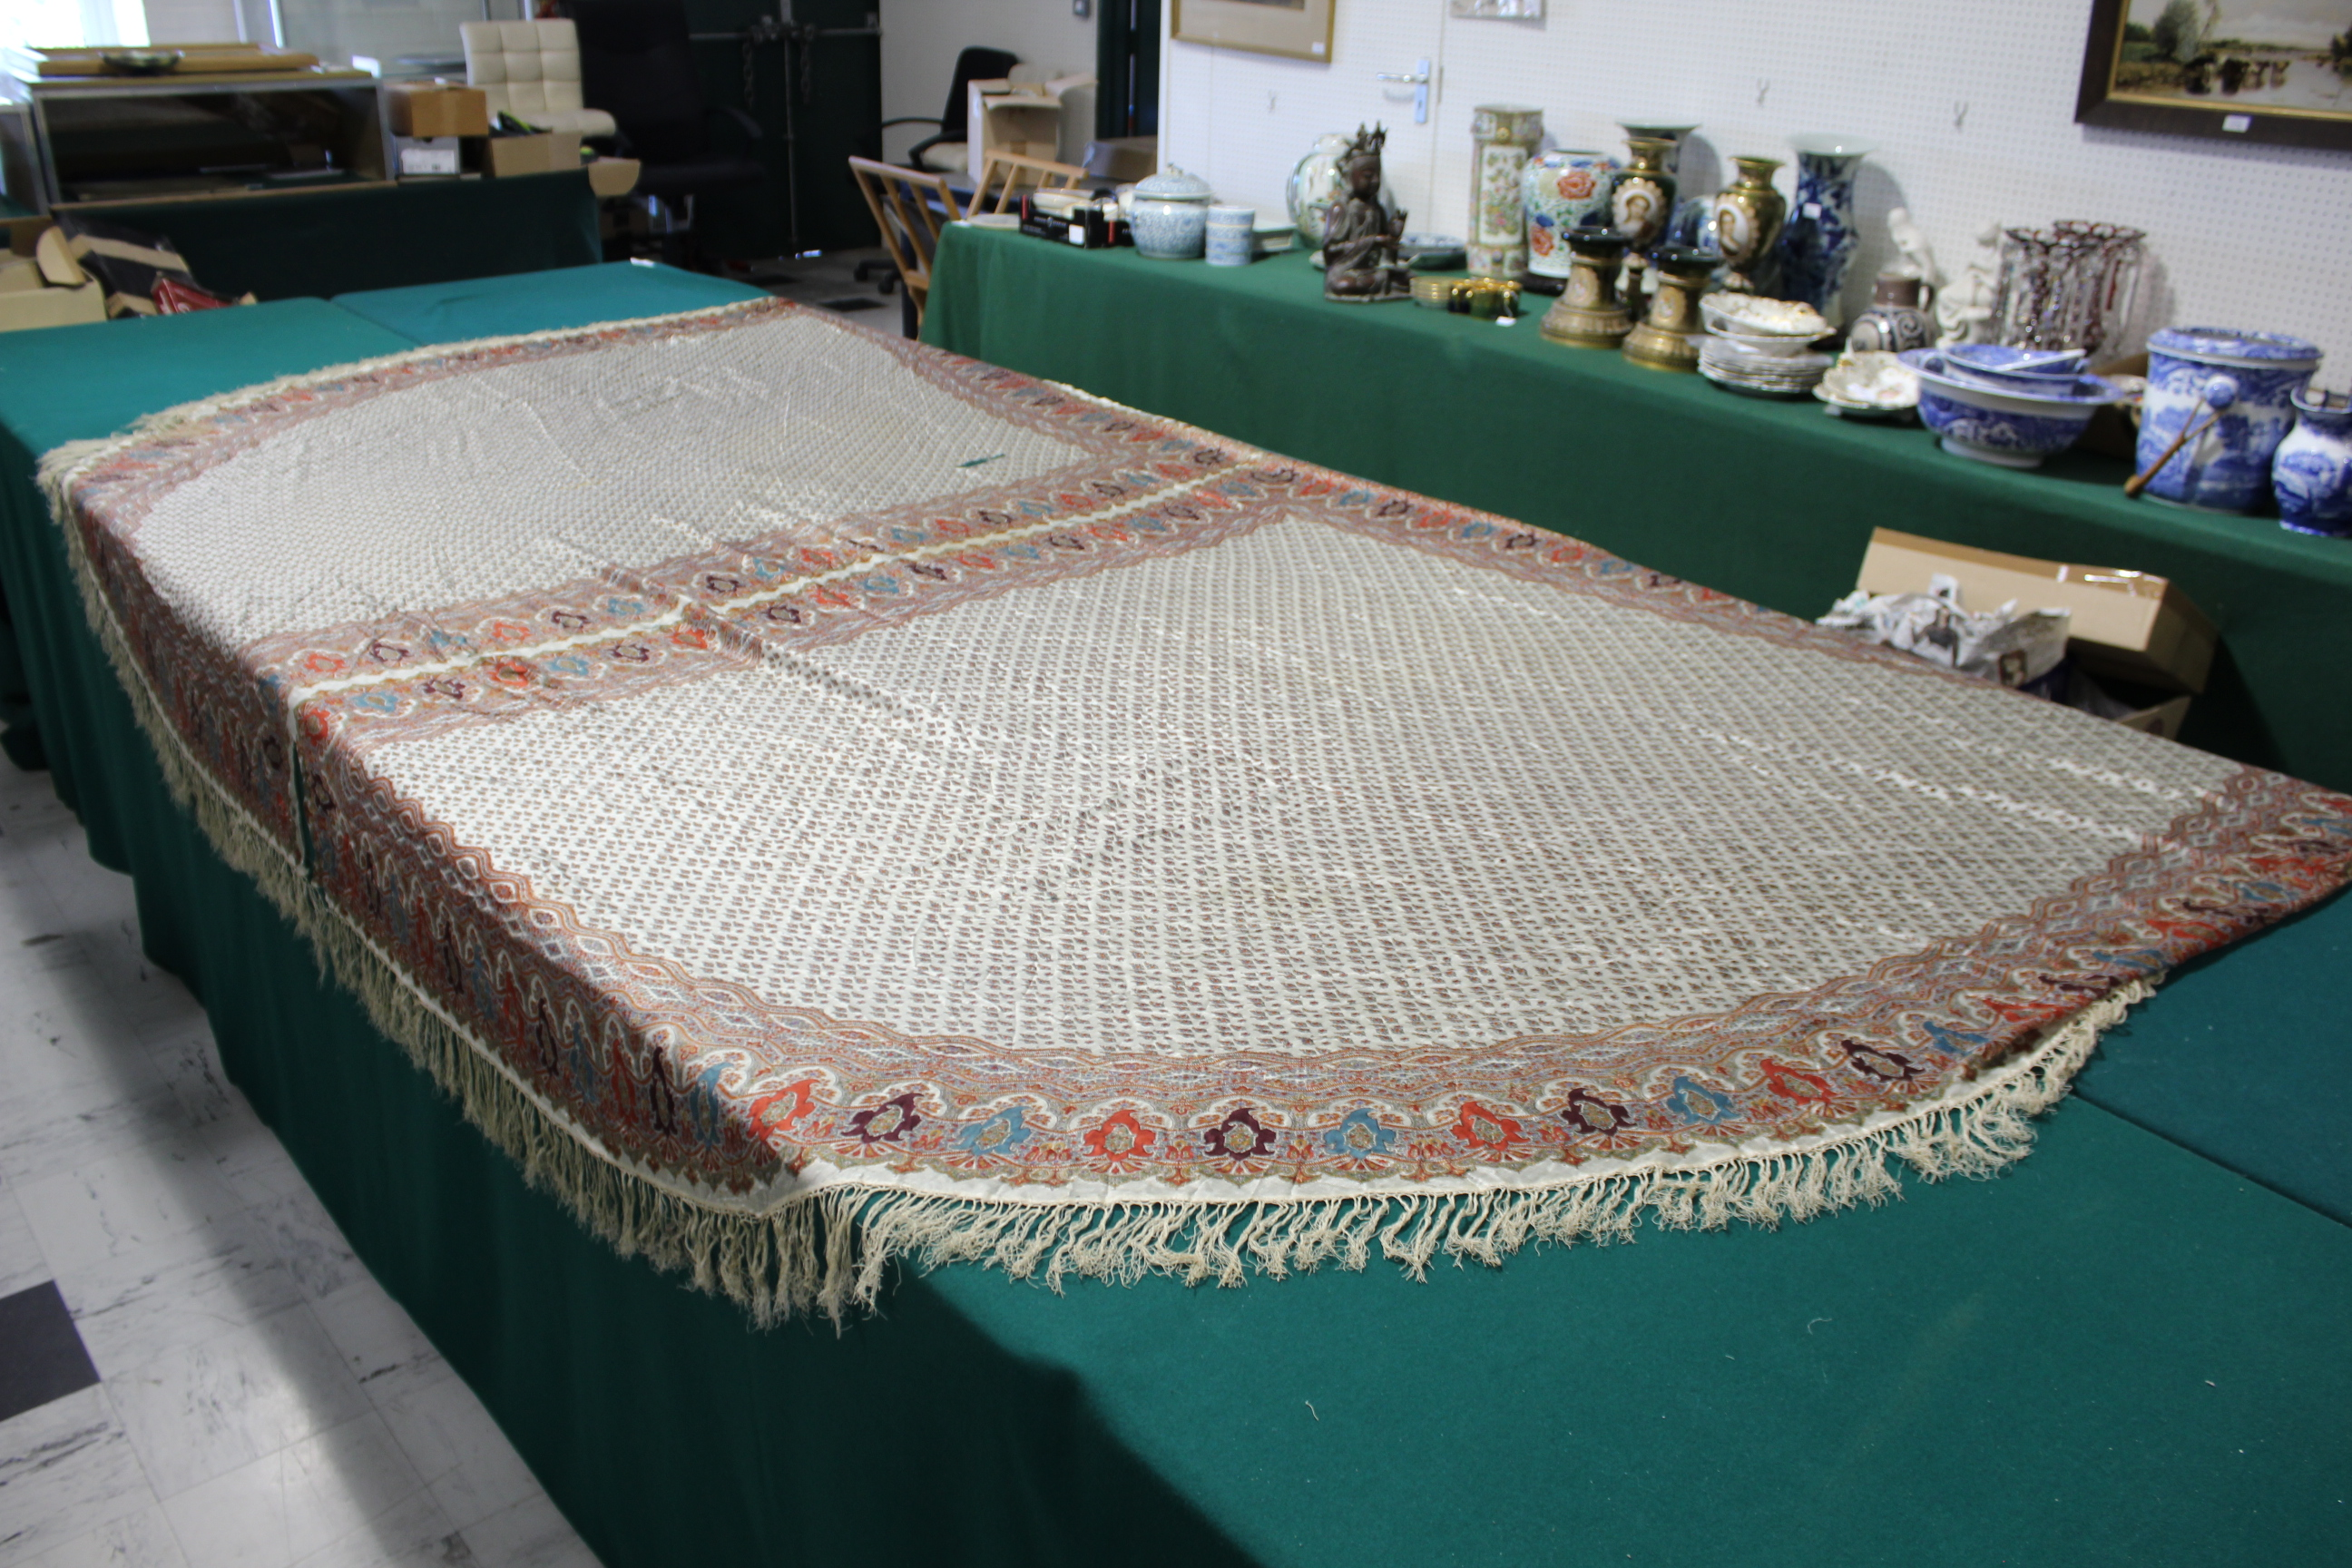 19THC PAISLEY SHAWL a mid 19thc paisley wool cashmere shawl (264cms by 126cms), and also with a fine - Image 5 of 9